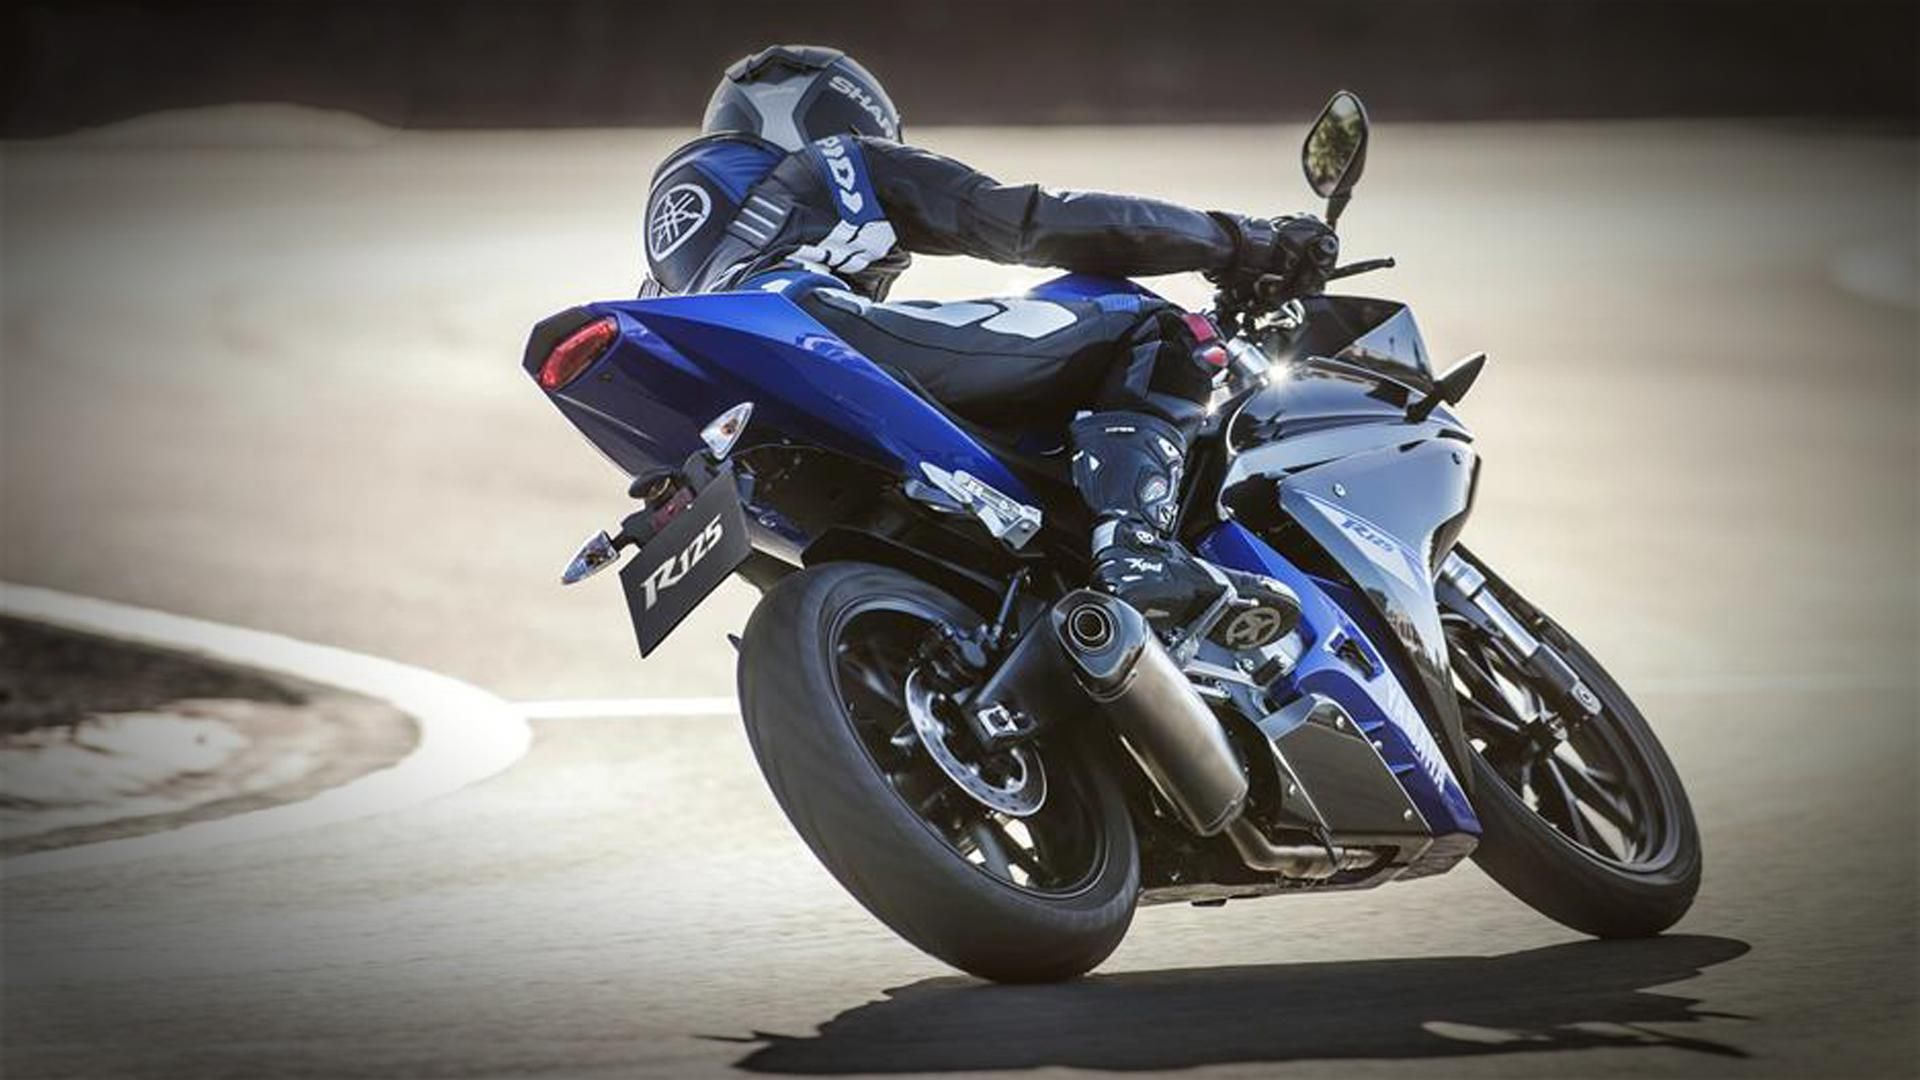 Yamaha yzf r125 usata moto usate 2016 car release date - Yamaha Yzf R125 Motorcycle Coloring Page Print Now Pinterest Yamaha Yzf Yamaha Motor And Cars